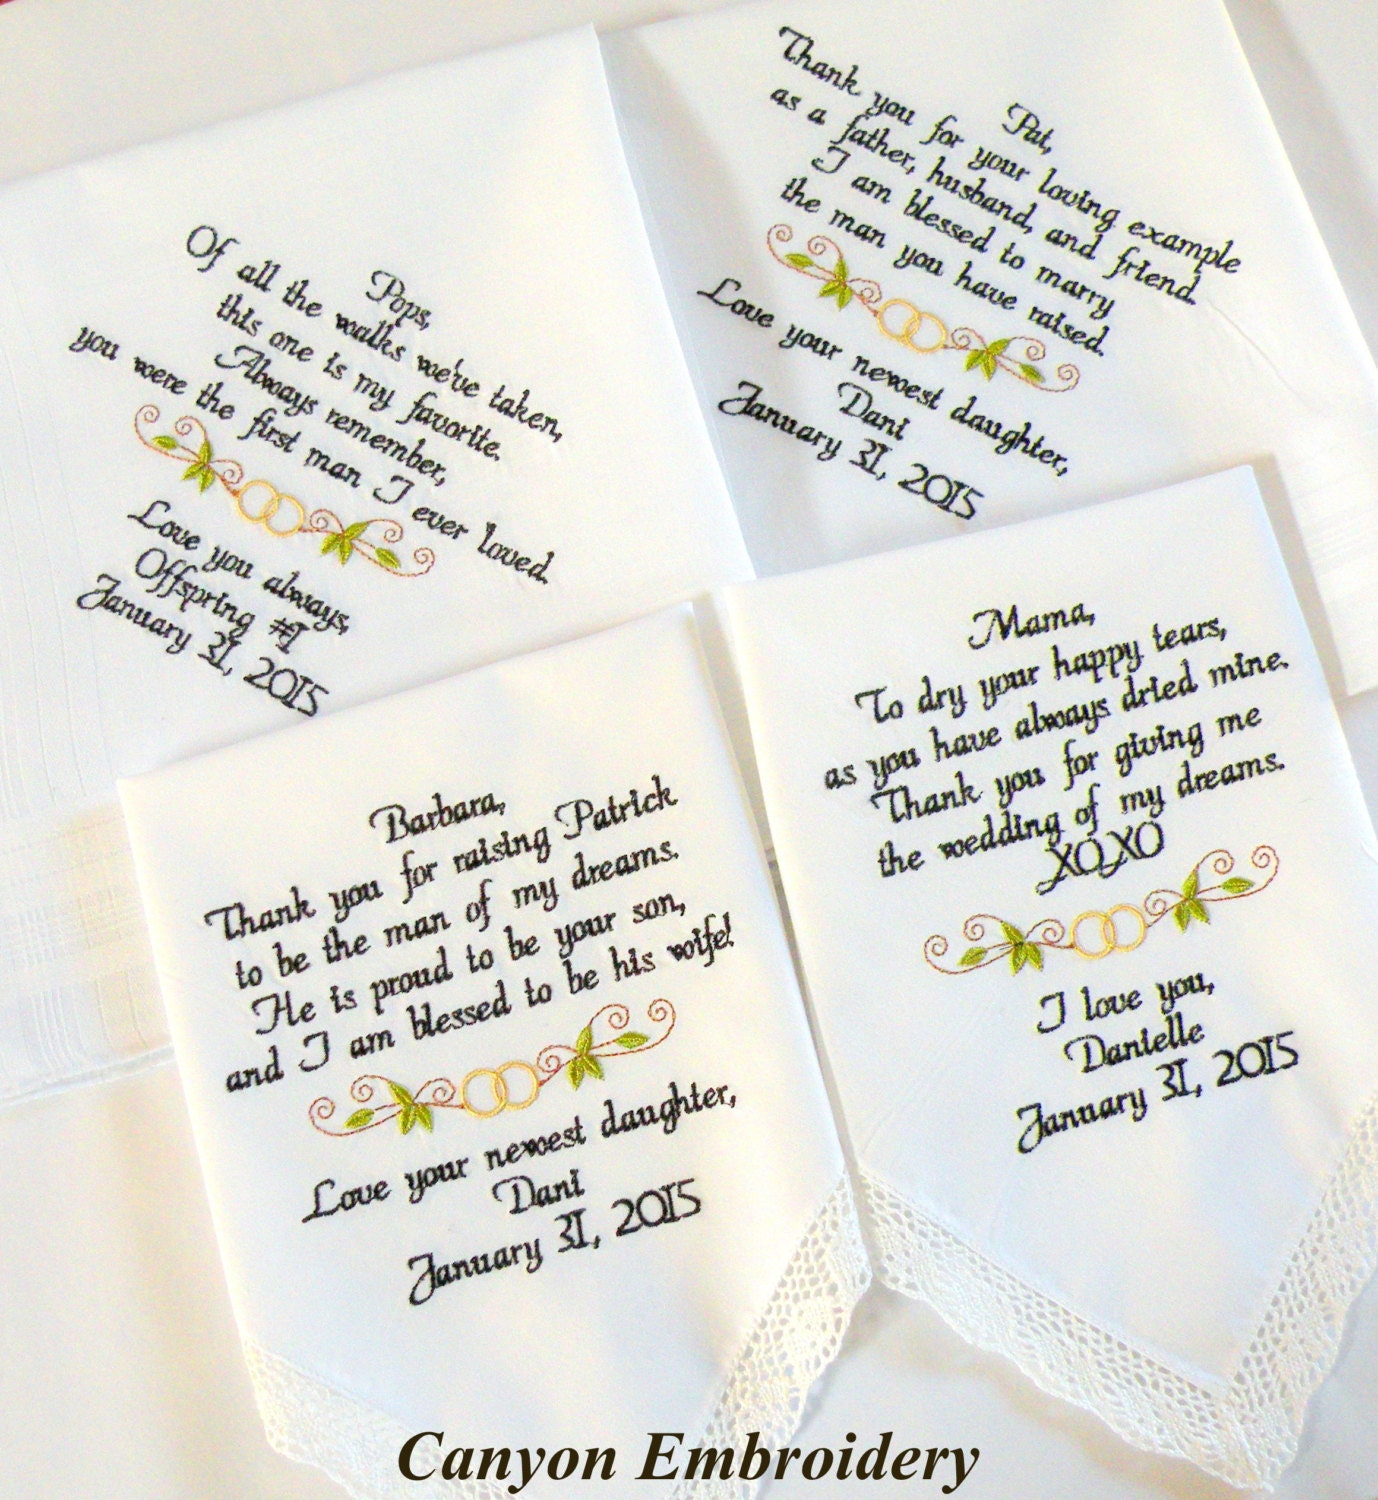 Wedding Gift Ideas Embroidered : Wedding Gift Embroidered Wedding Handkerchiefs Wedding Gifts